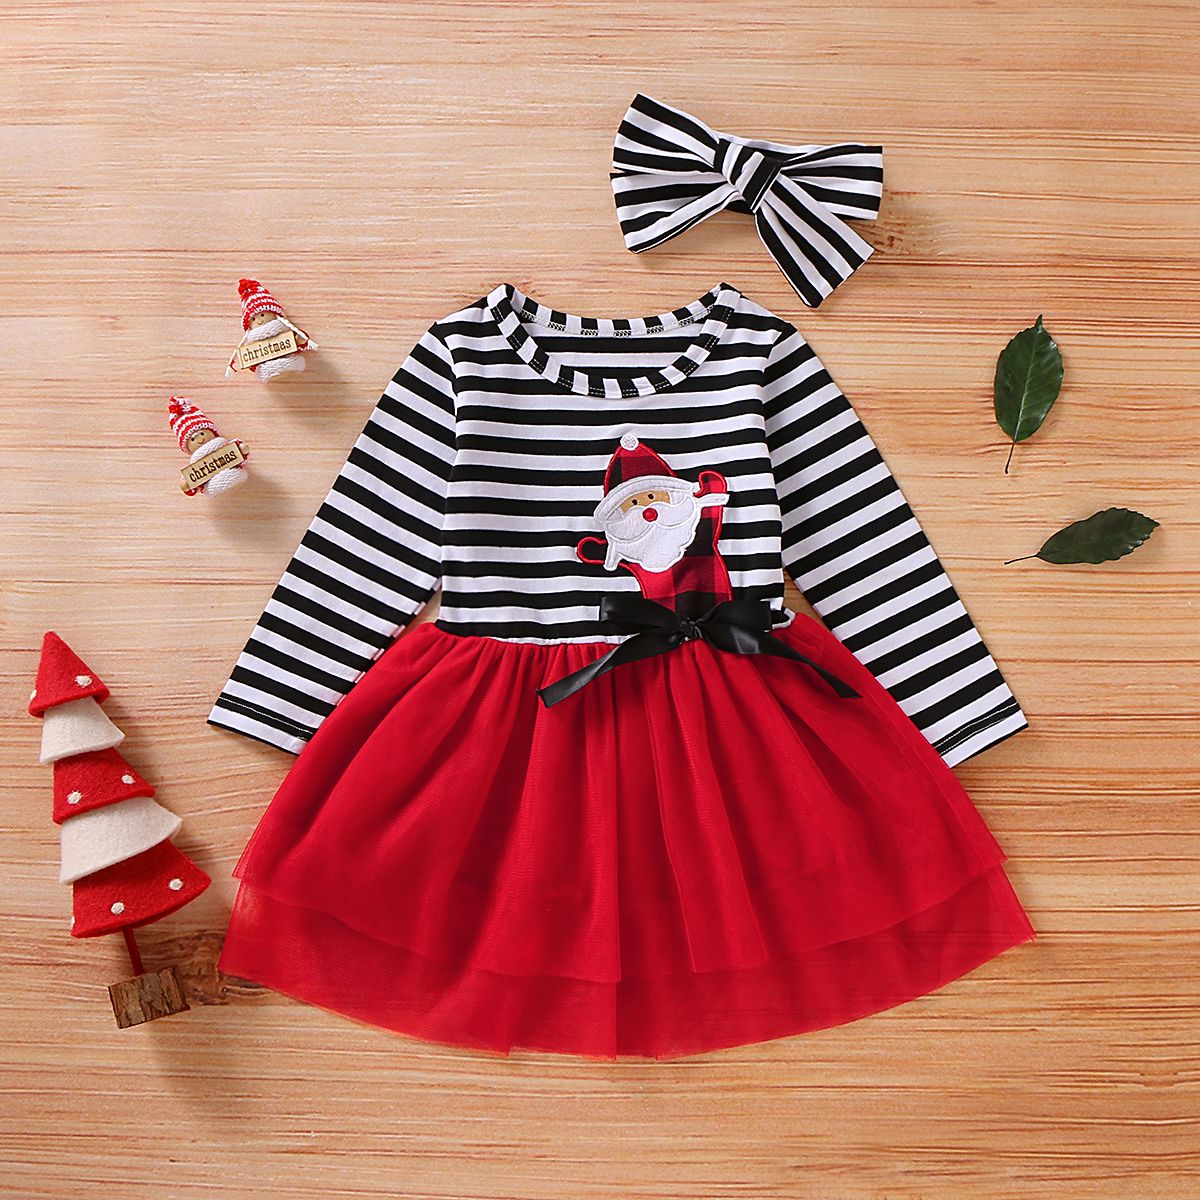 Toddler Baby Girls Cartoon Santa Christmas XMAS Striped Tutu Tulle Dress Outfits